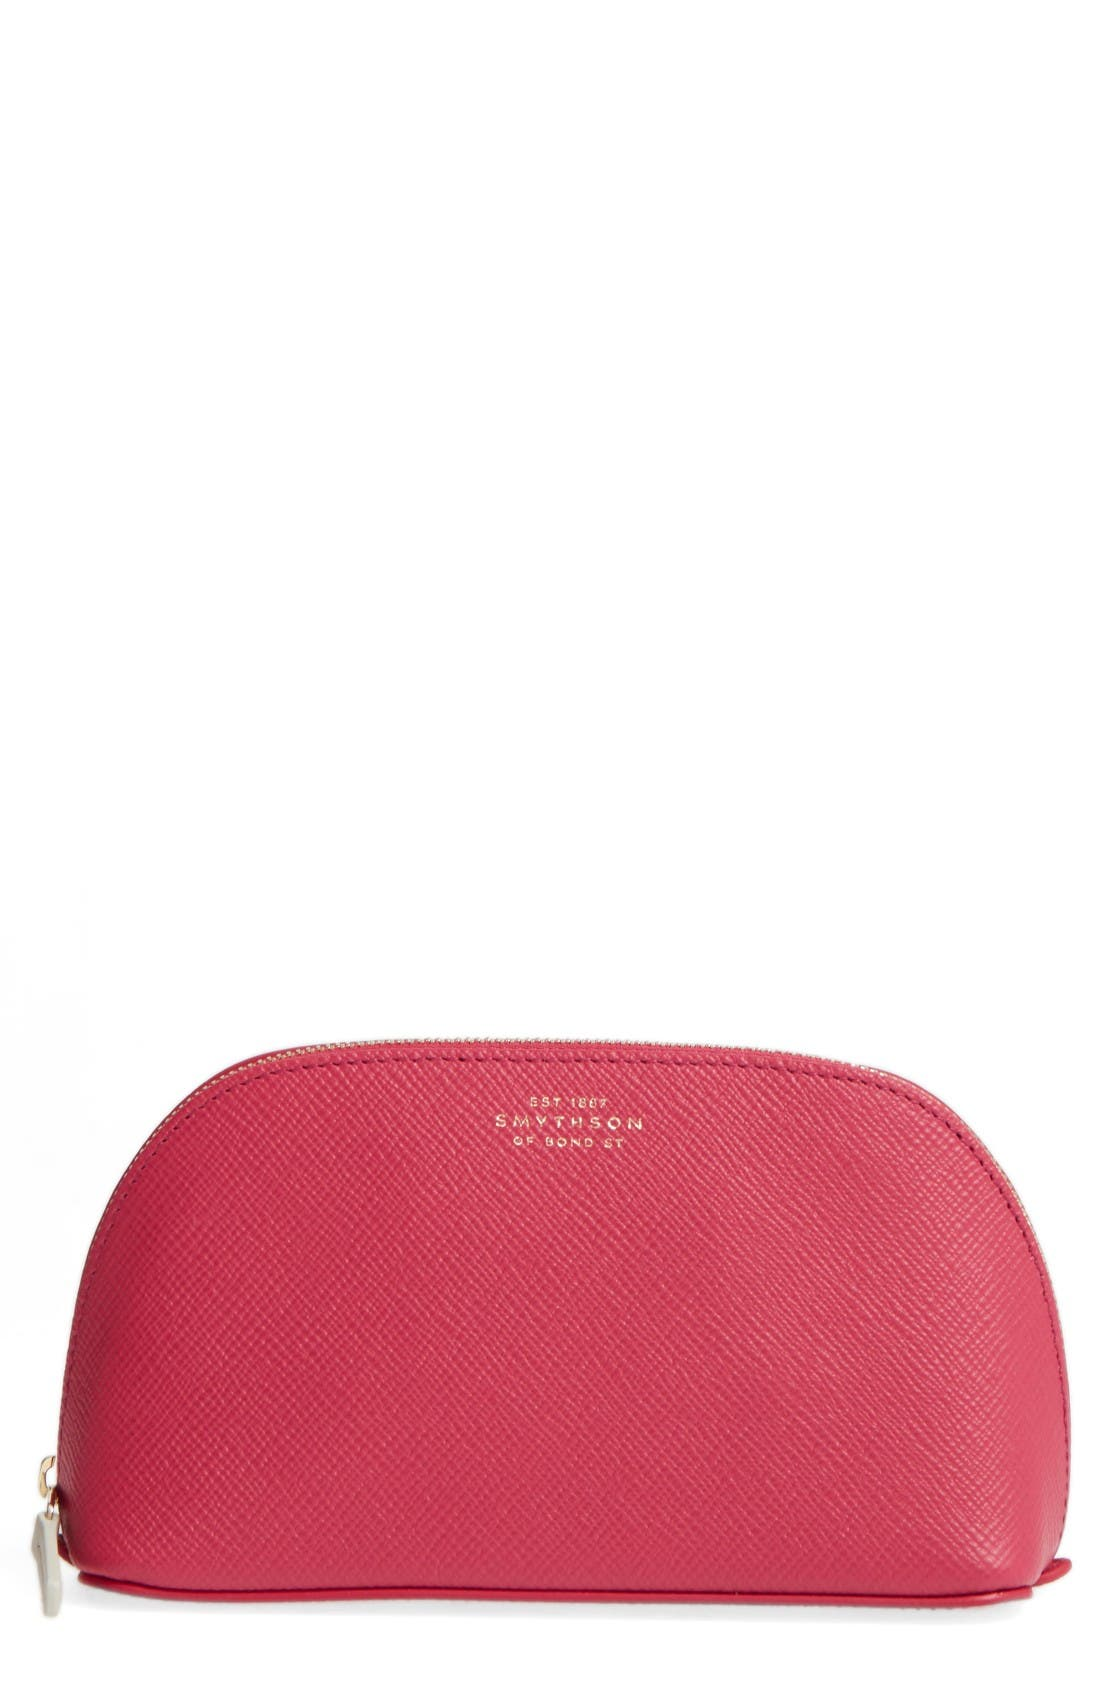 Alternate Image 1 Selected - Smythson Small Calfskin Leather Cosmetics Case